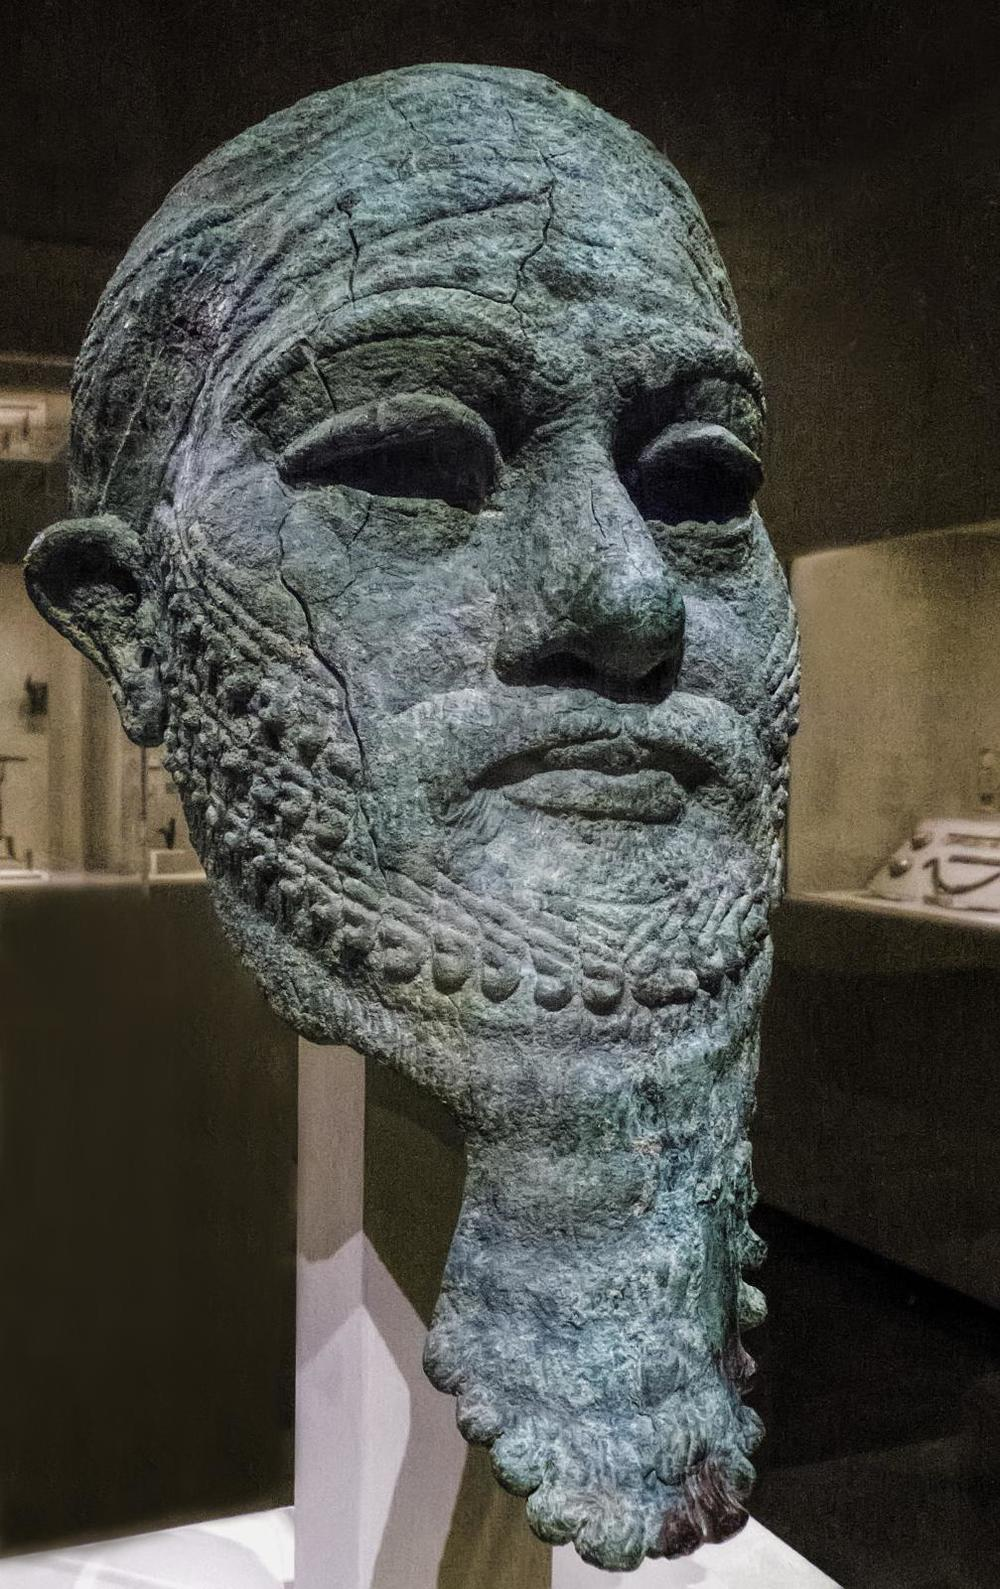 Elamite Head of an Ruler, Iran - 2300-2000 BCE Flickr/Mary Harrsch